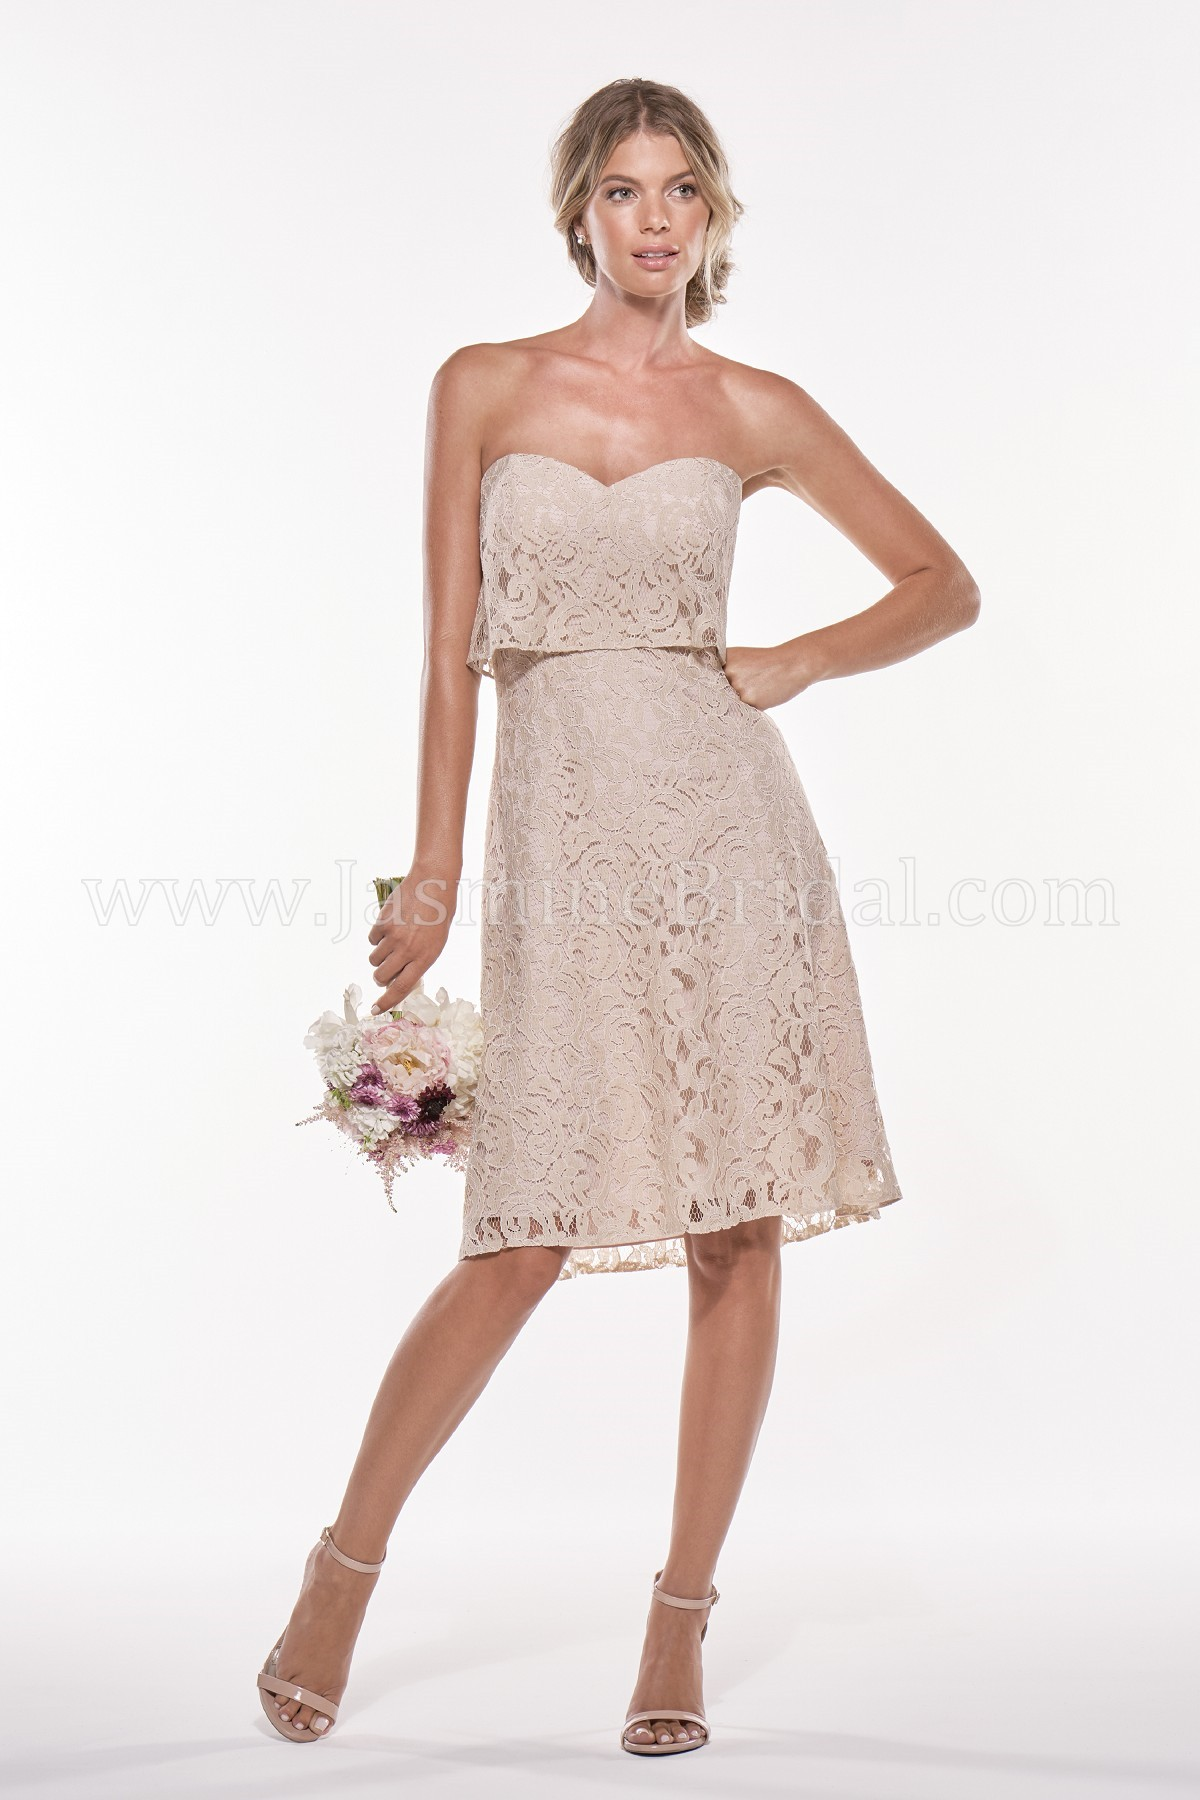 P196011K Knee Length Sweetheart Strapless Lace Bridesmaid Dress